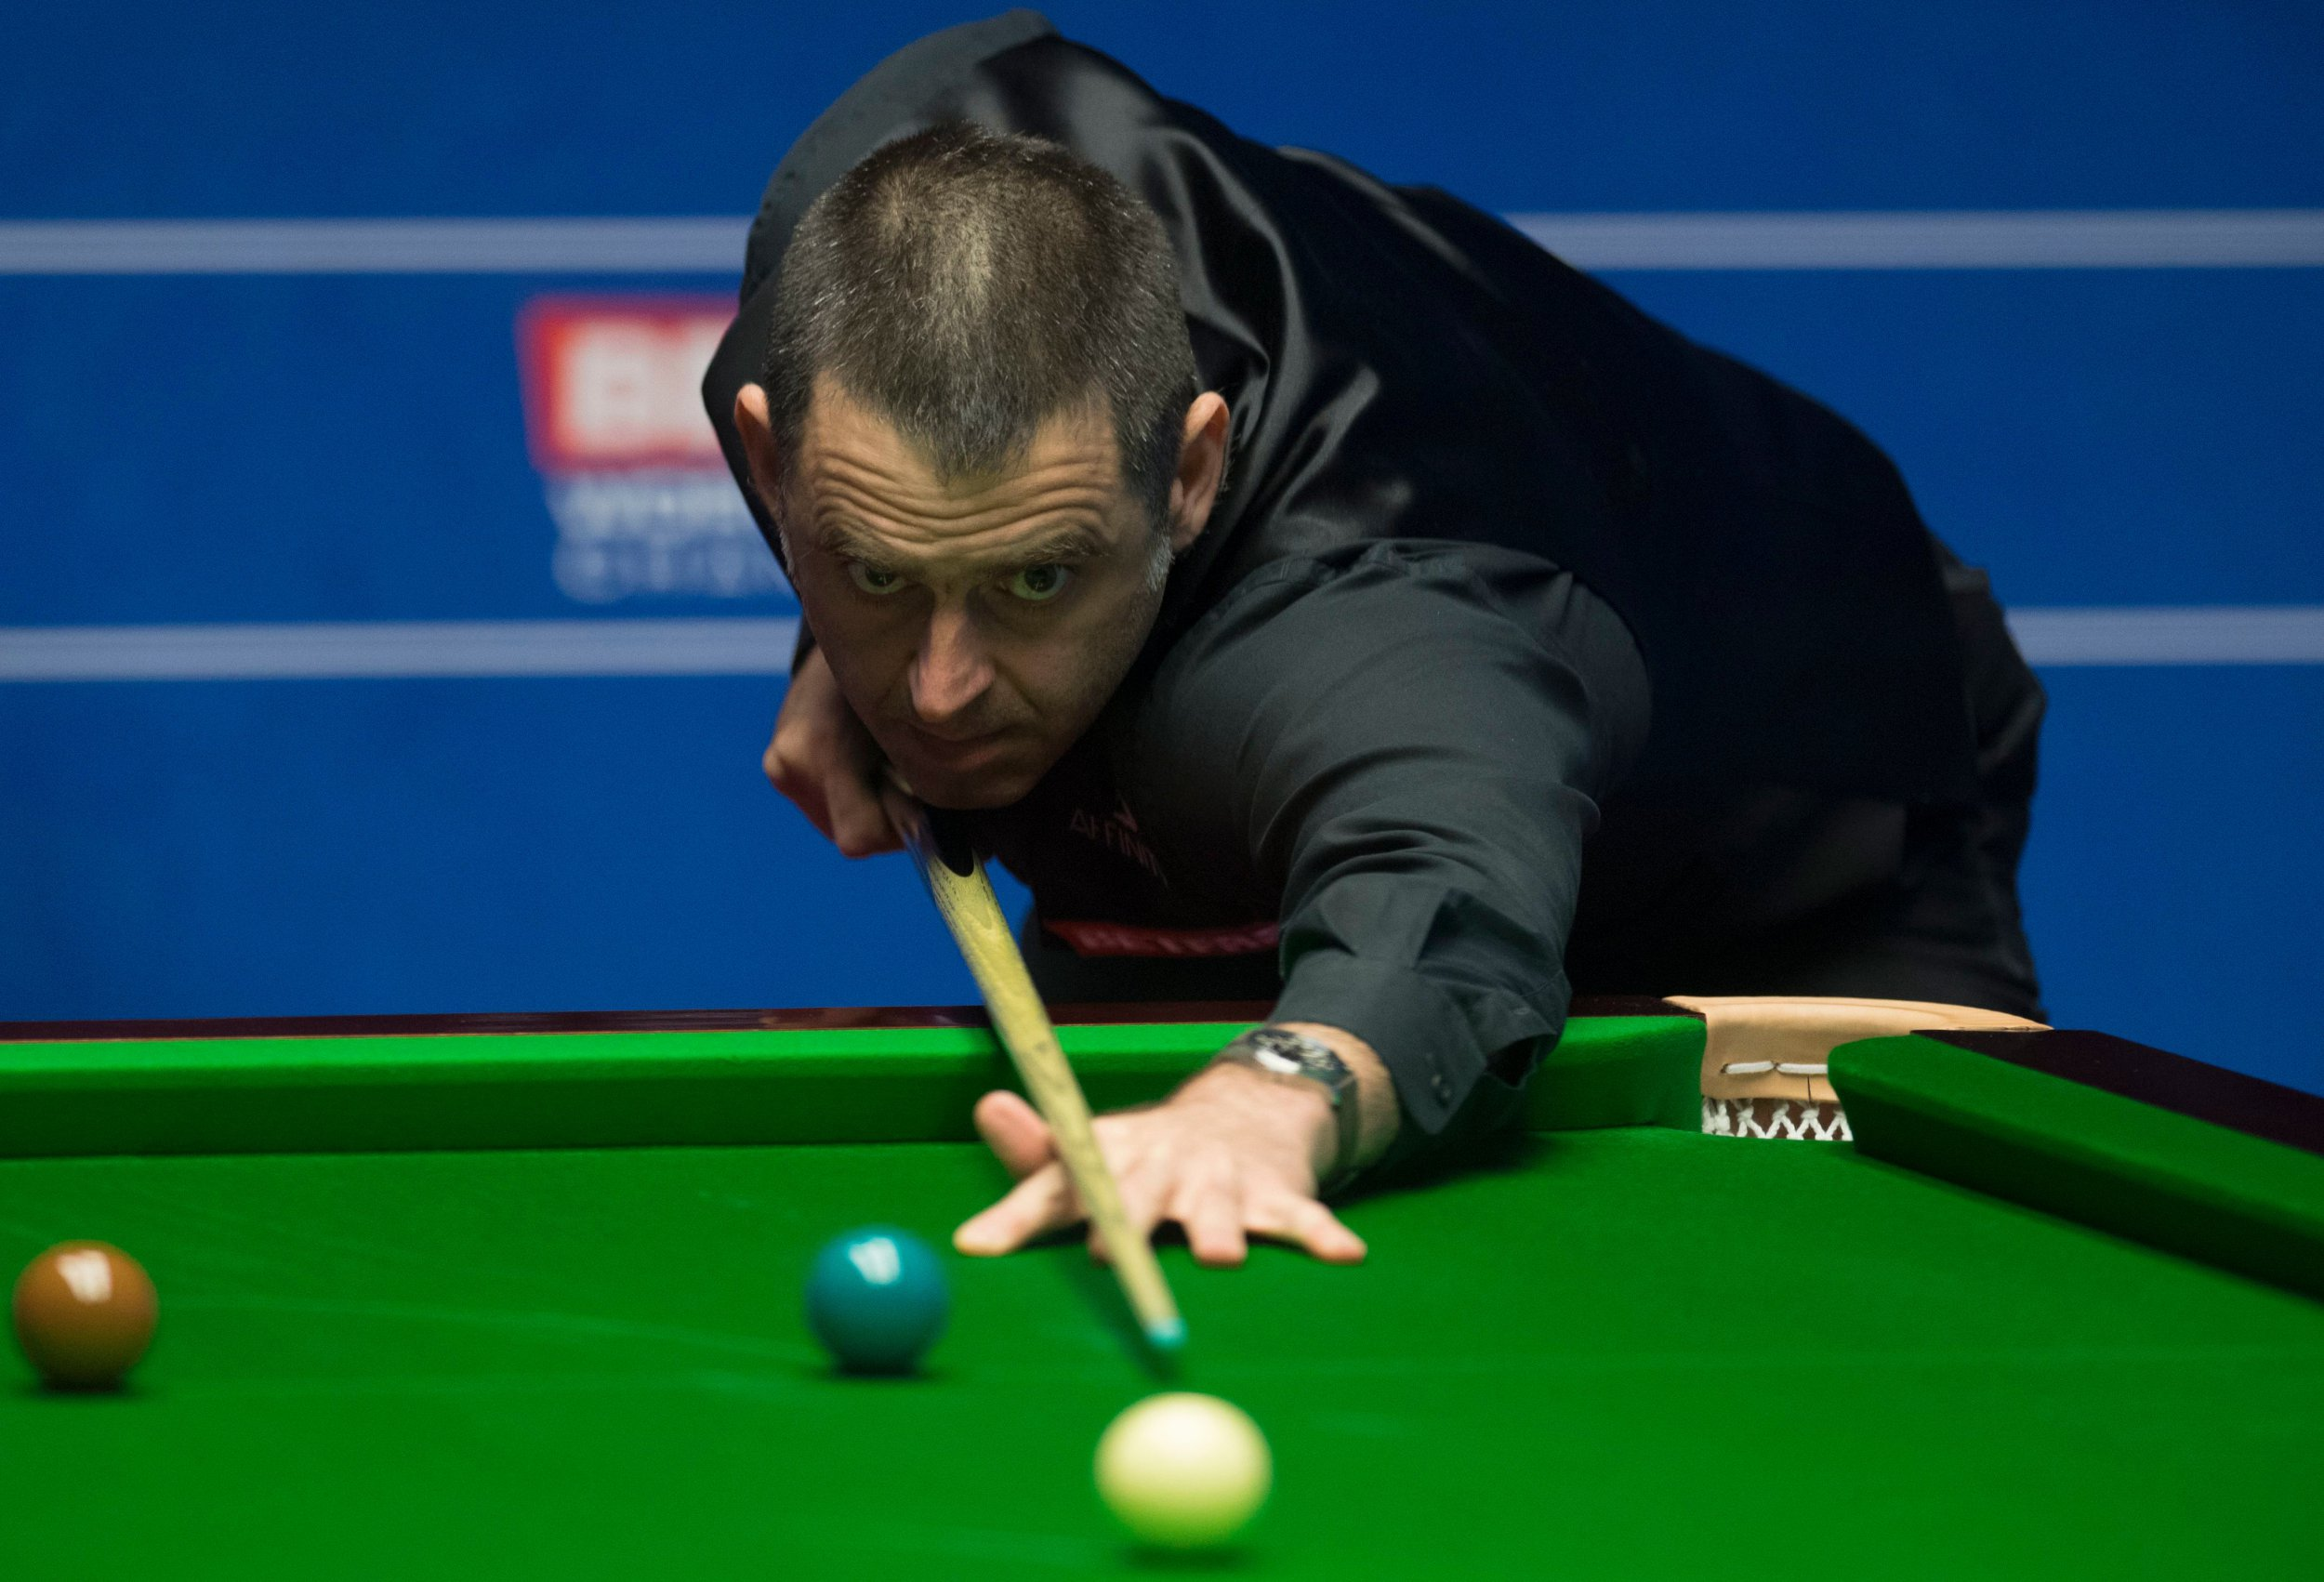 Ronnie O'Sullivan could be winning ranking events at 50-years-old, says Steve Davis